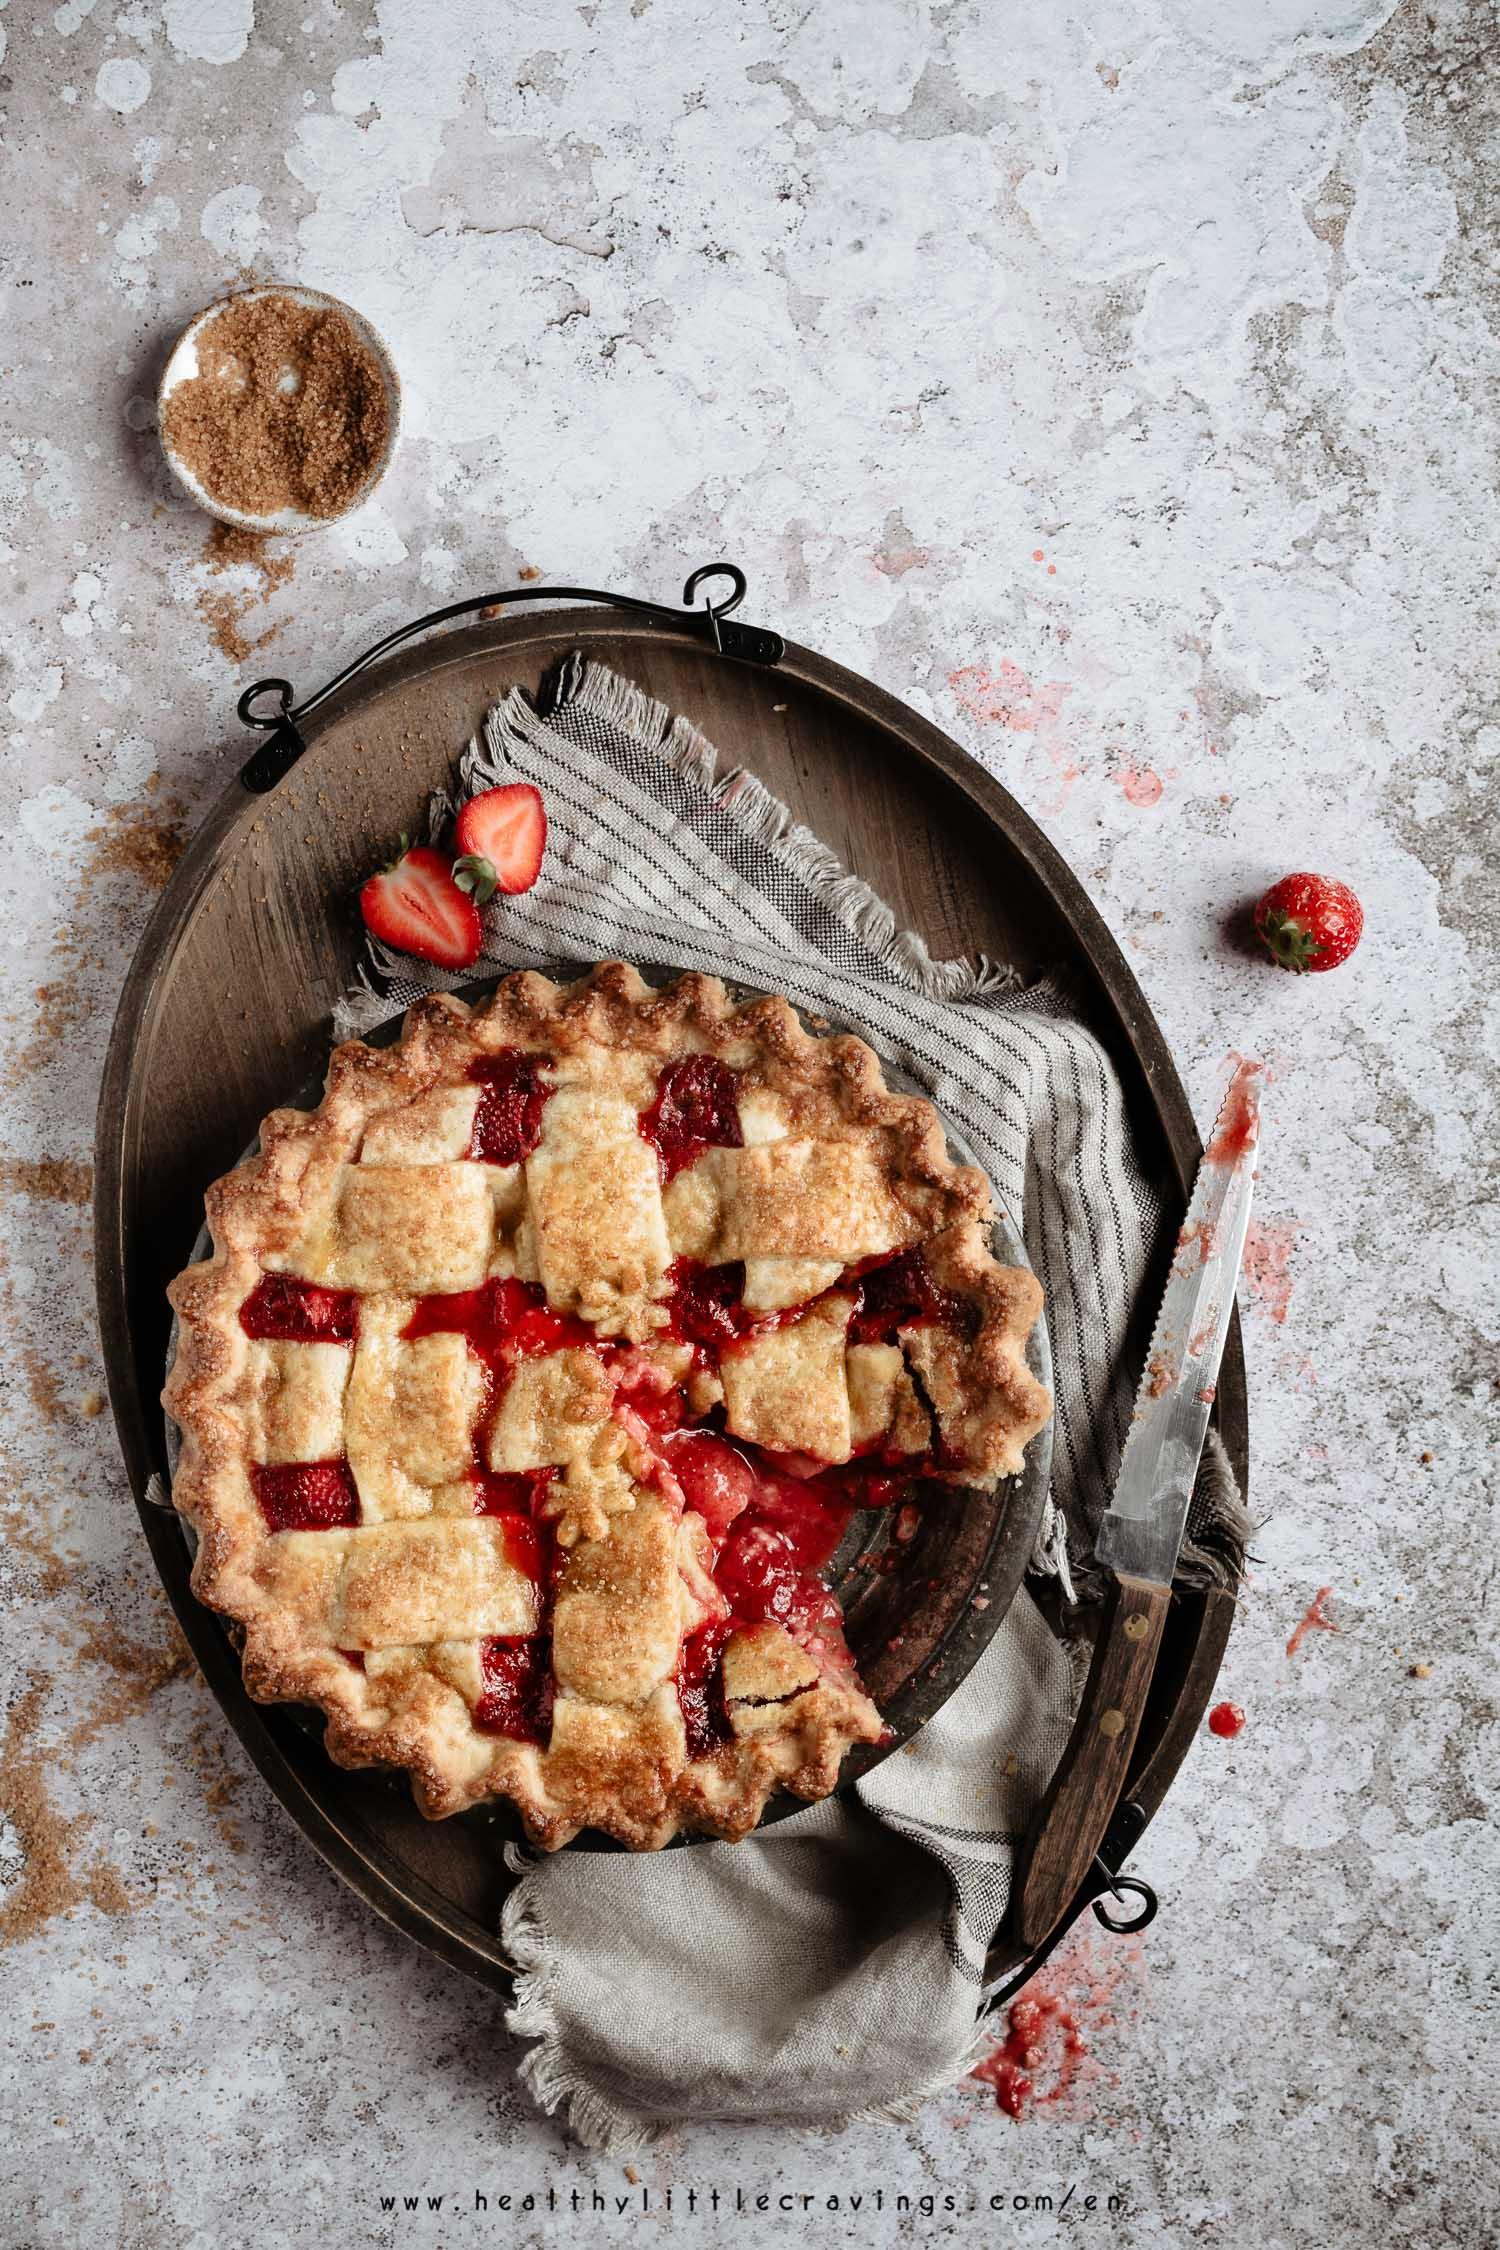 Delicious strawberry pie onto a tray ready to be served